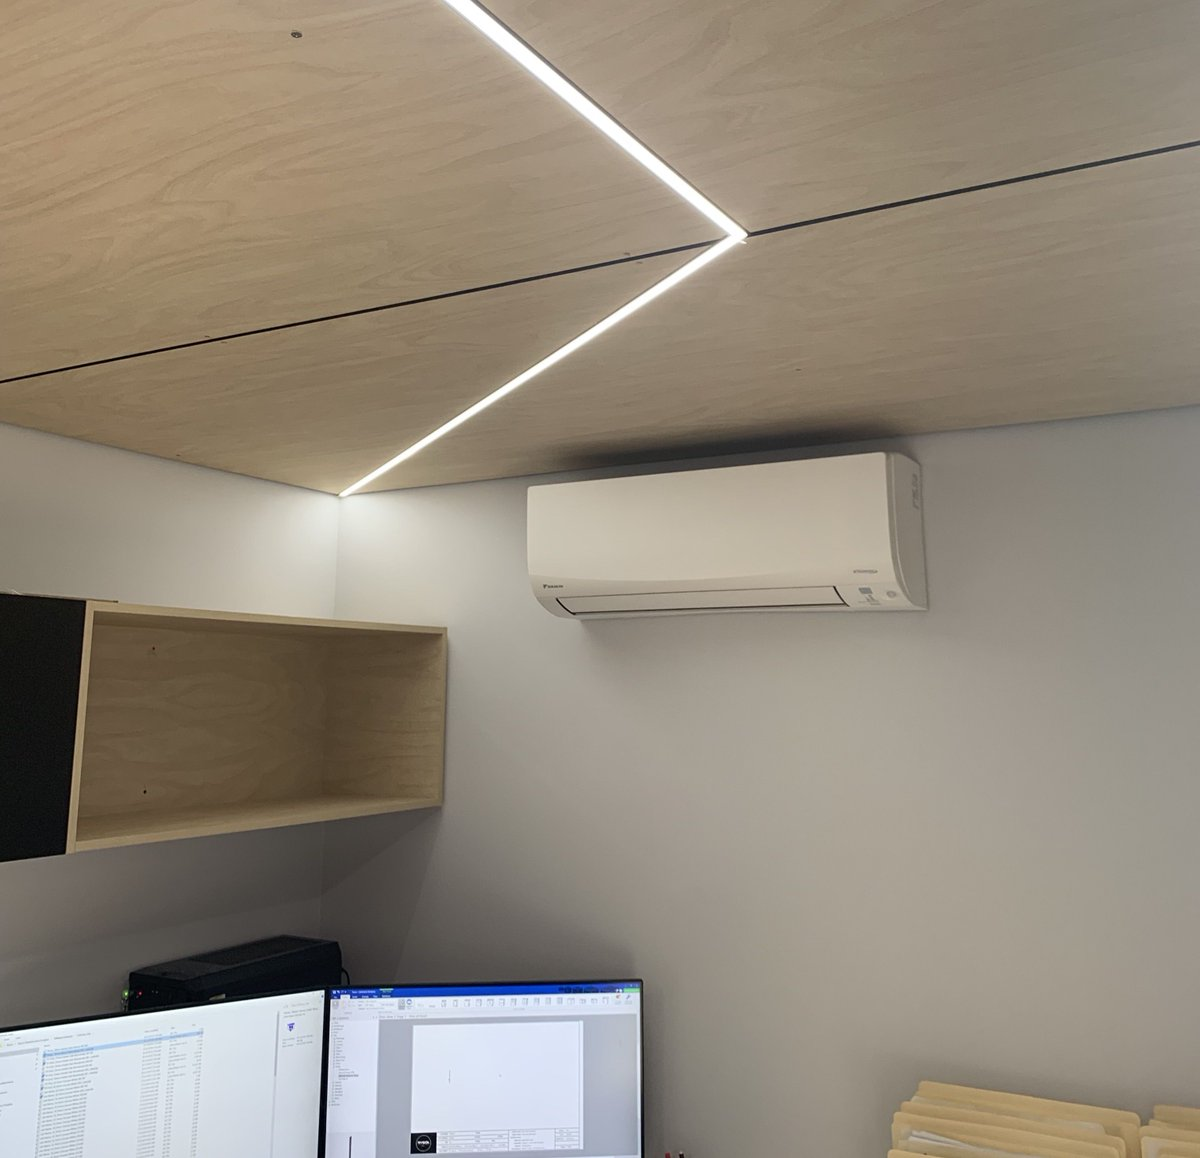 This Daikin split system was recently installed in the new office at Ryson Detailed joinery in Queanbeyan.   Just in time for the hot weather ☀️